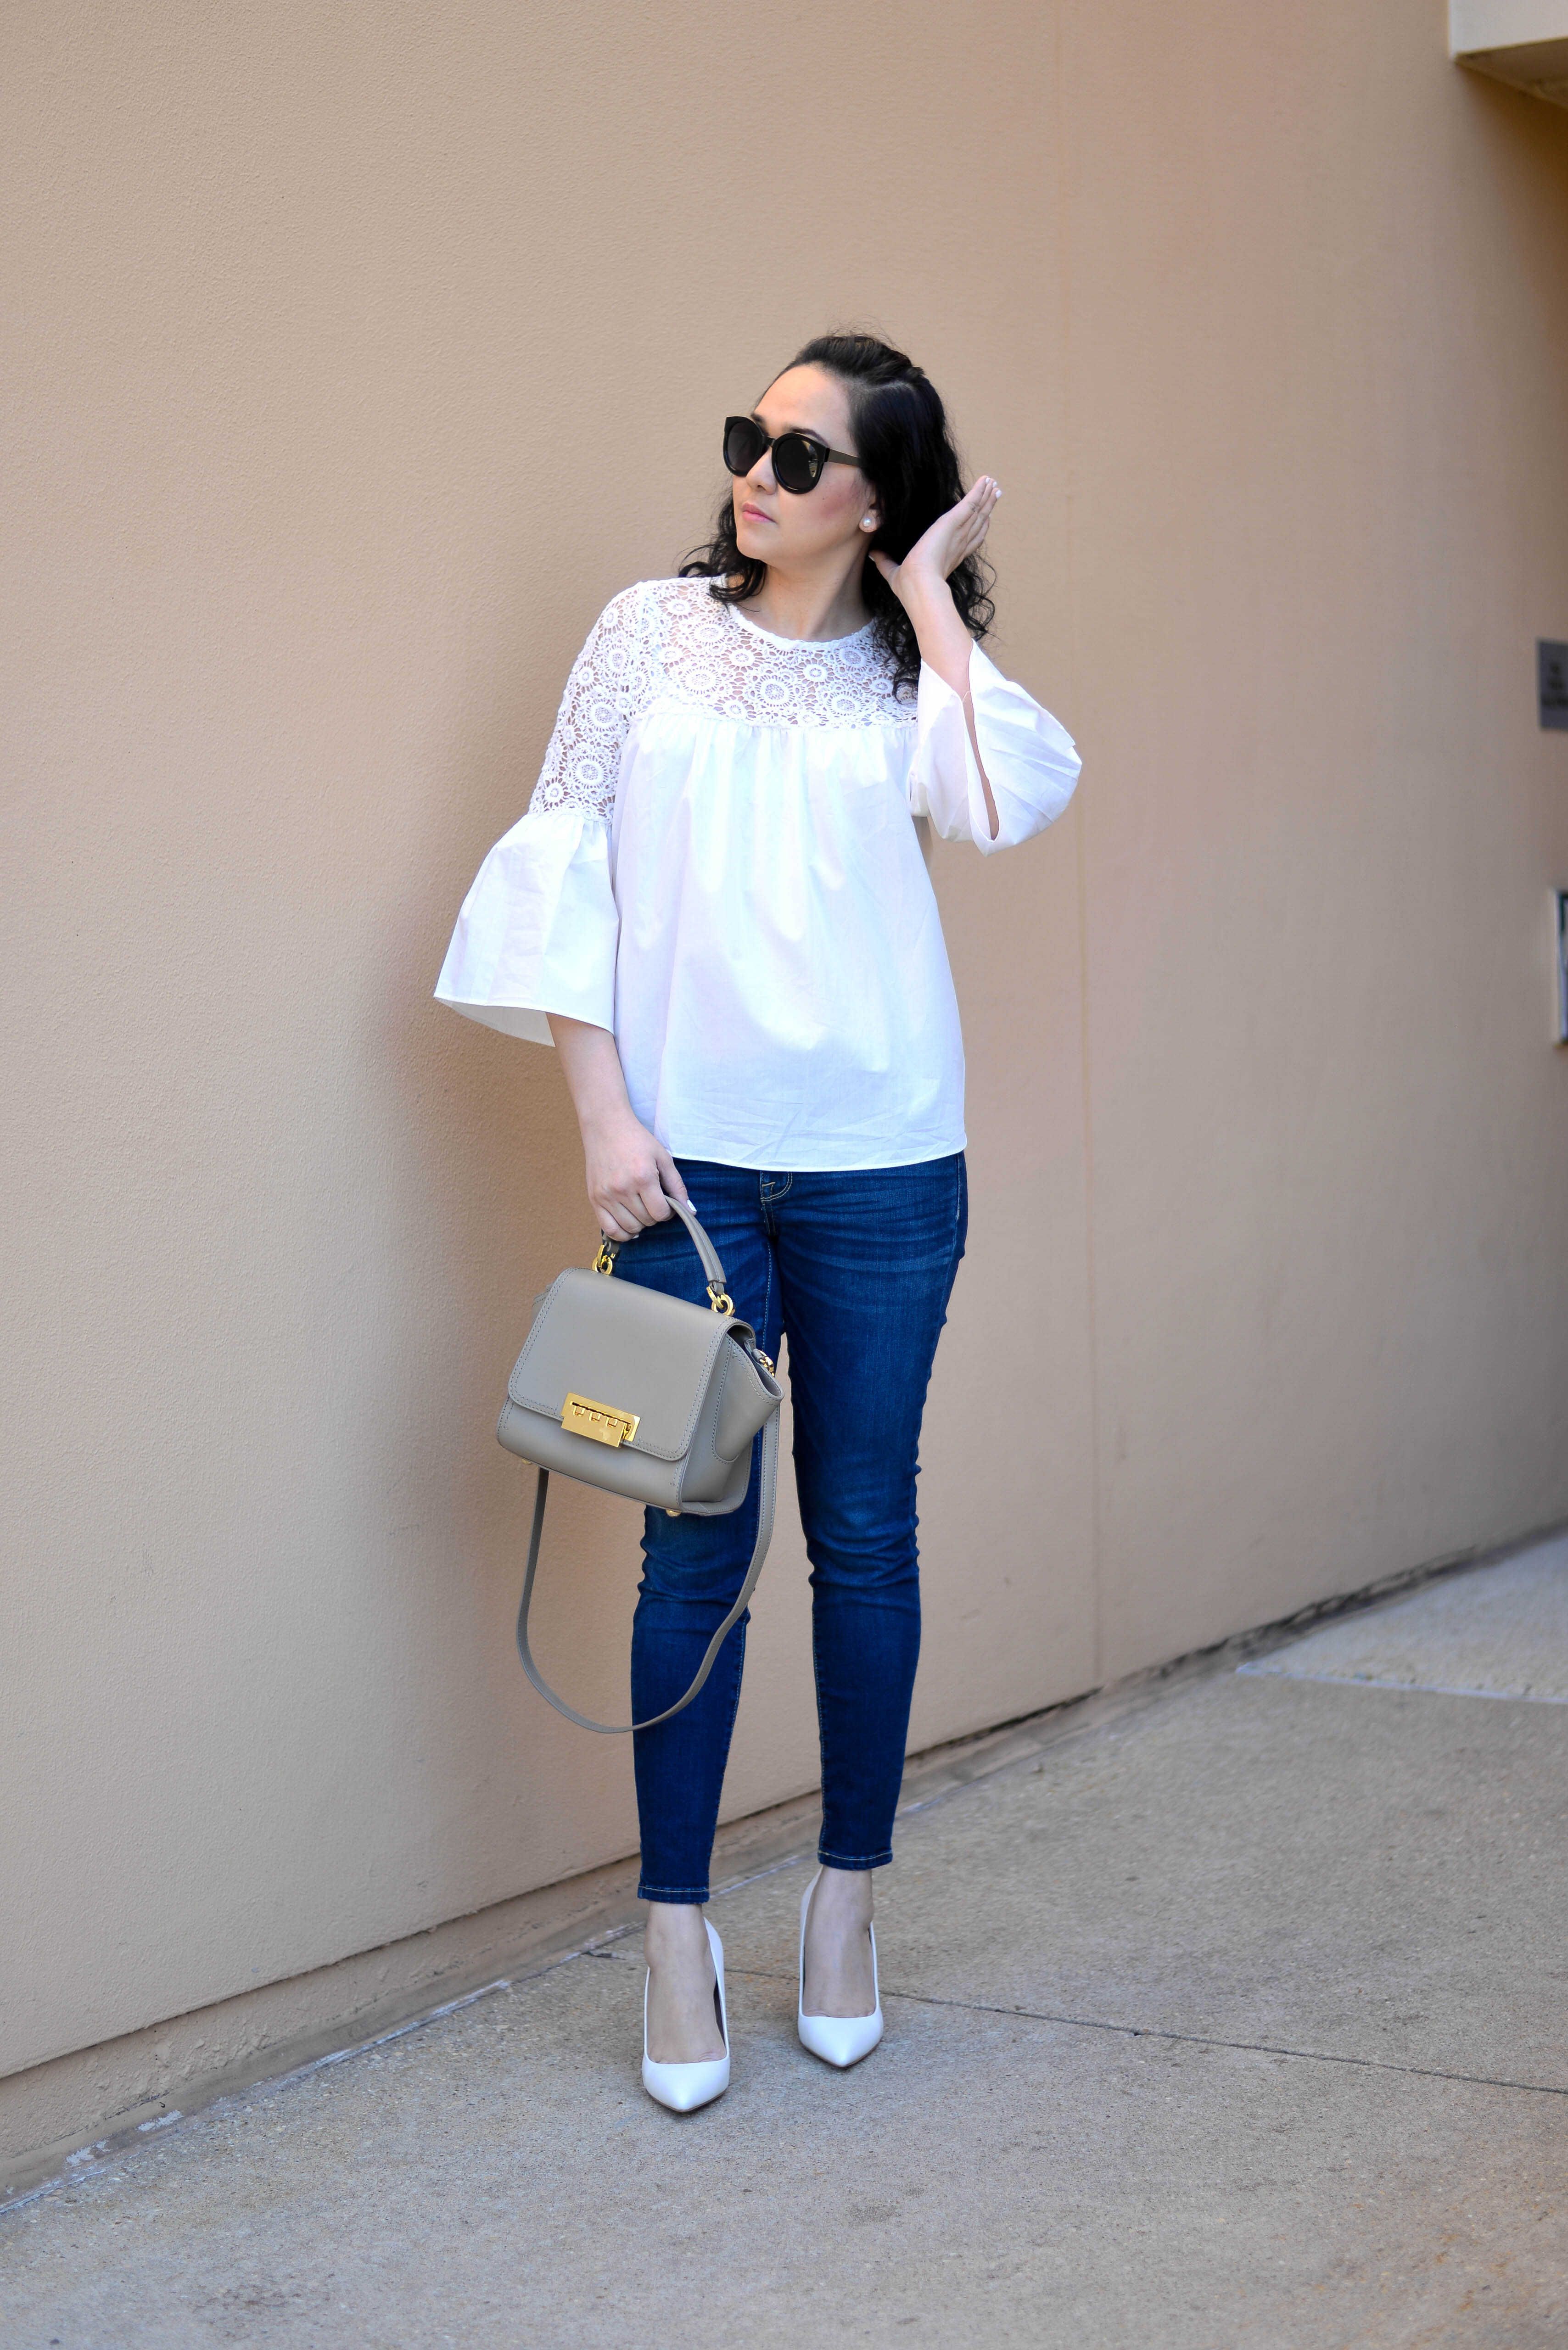 Spring Bell Sleeves and White Shoes